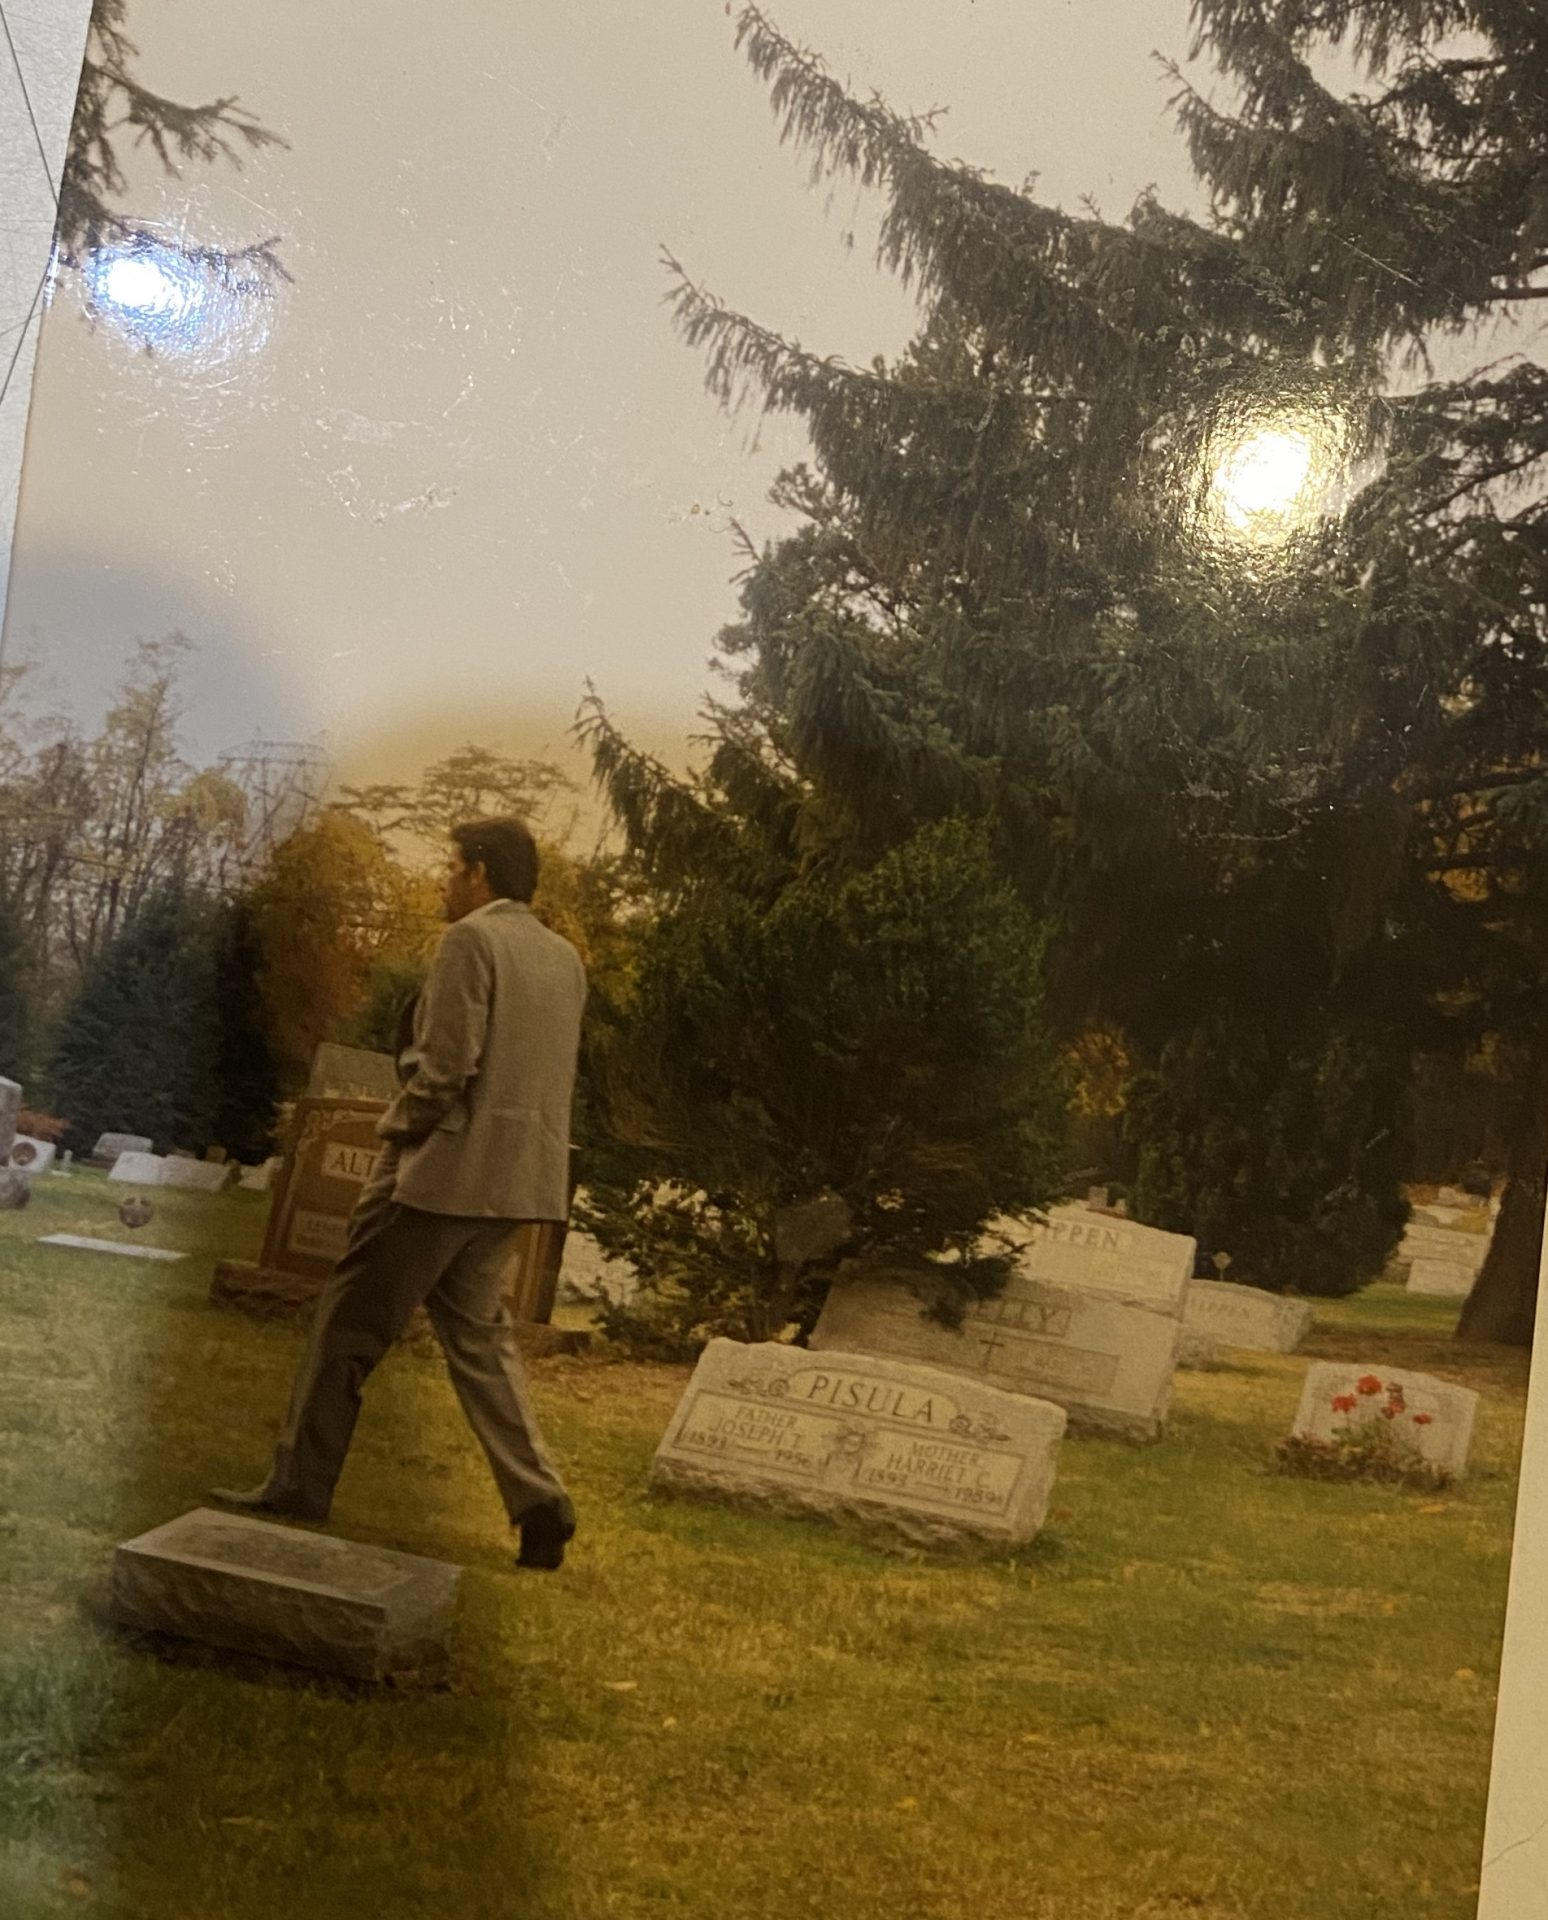 Looking For his grandfathers grave in Masontown Pennsylvania